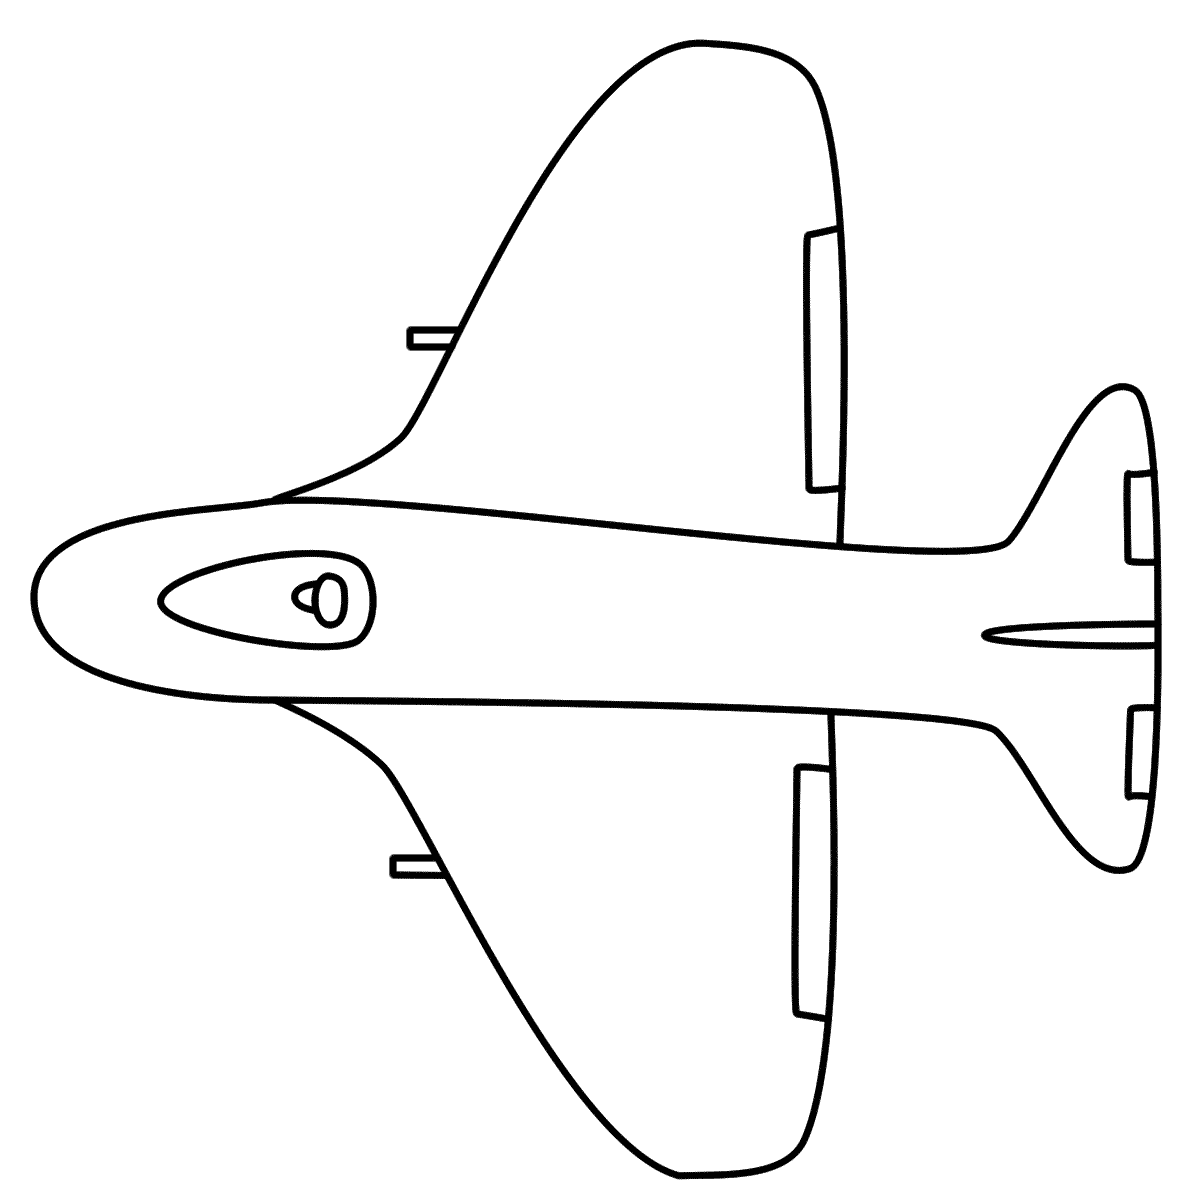 Military Airplane Coloring Pages | Clipart Panda - Free Clipart Images